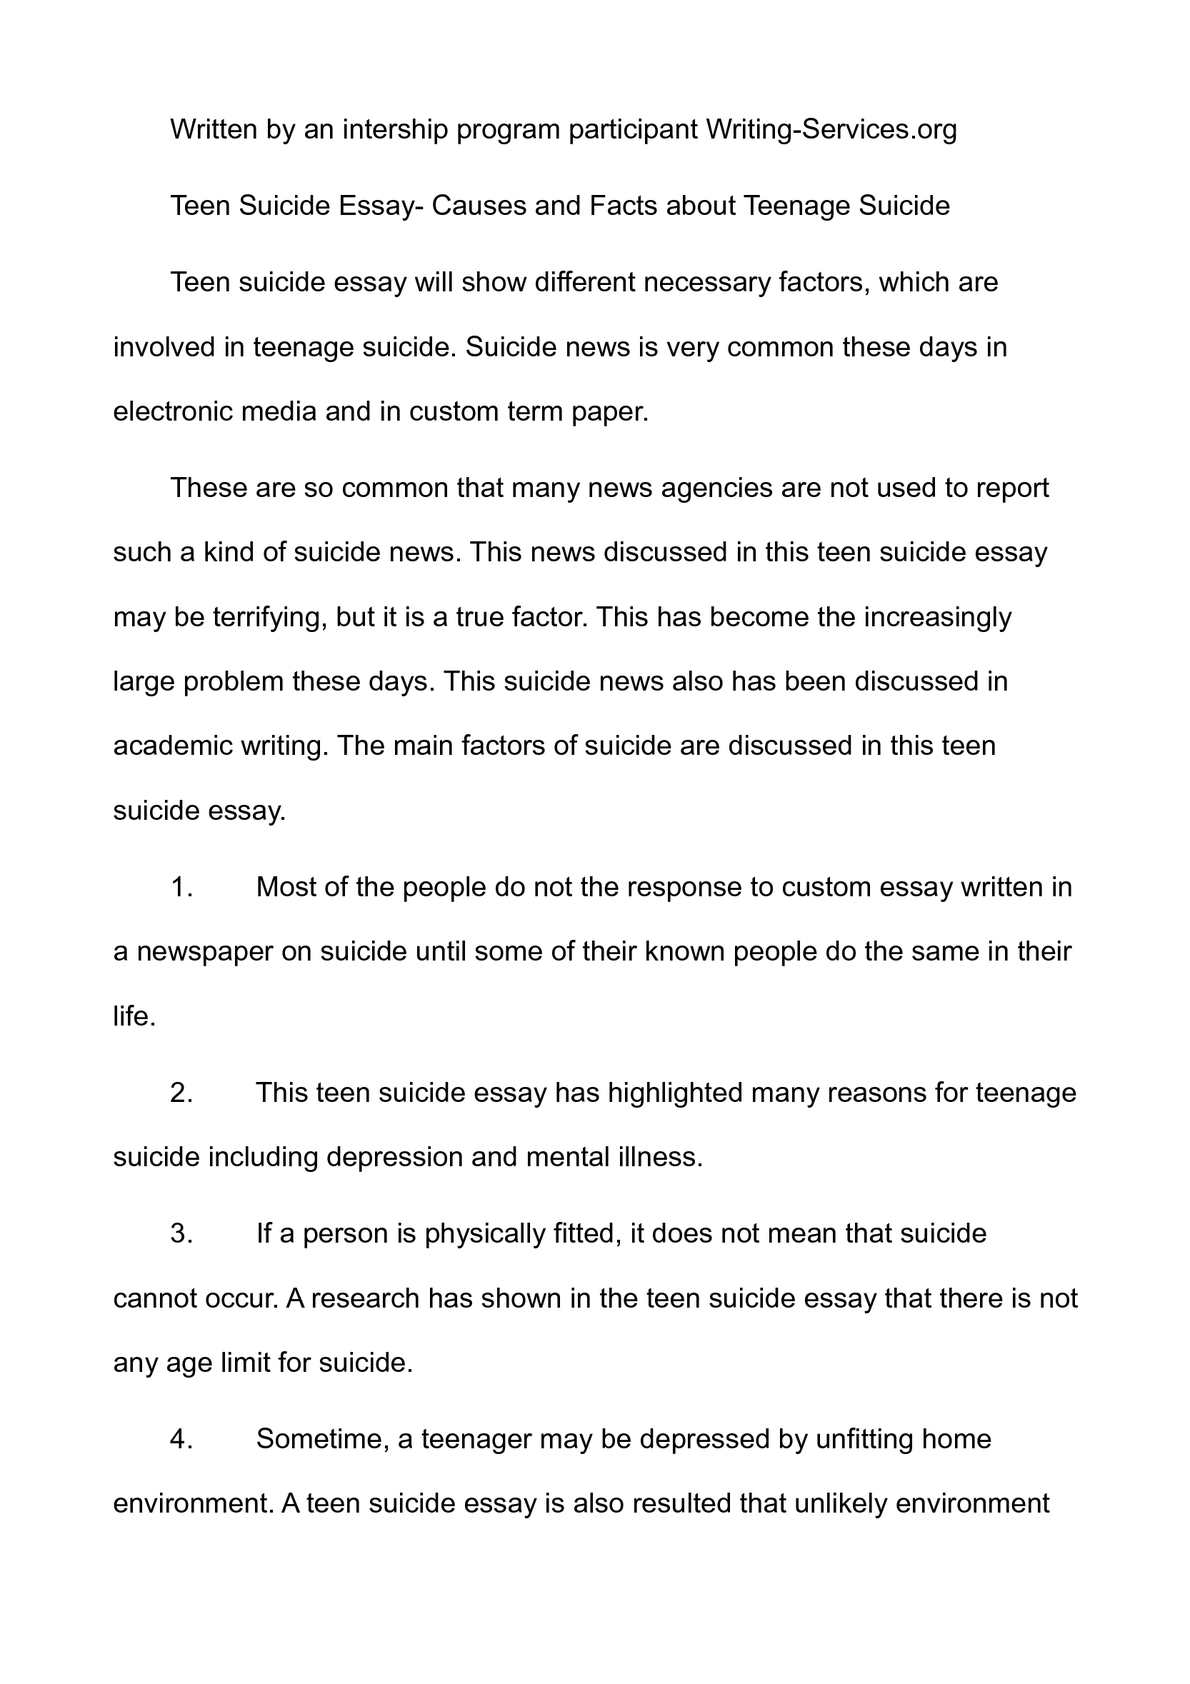 Perseverance Essay Assisted Suicide Persuasive Essay Teenage Suicide Essay Persuasive First Person Essay also Essay About Nursing Profession Assisted Suicide Persuasive Essay Teenage Suicide Essay Persuasive  Essay On Punctuation